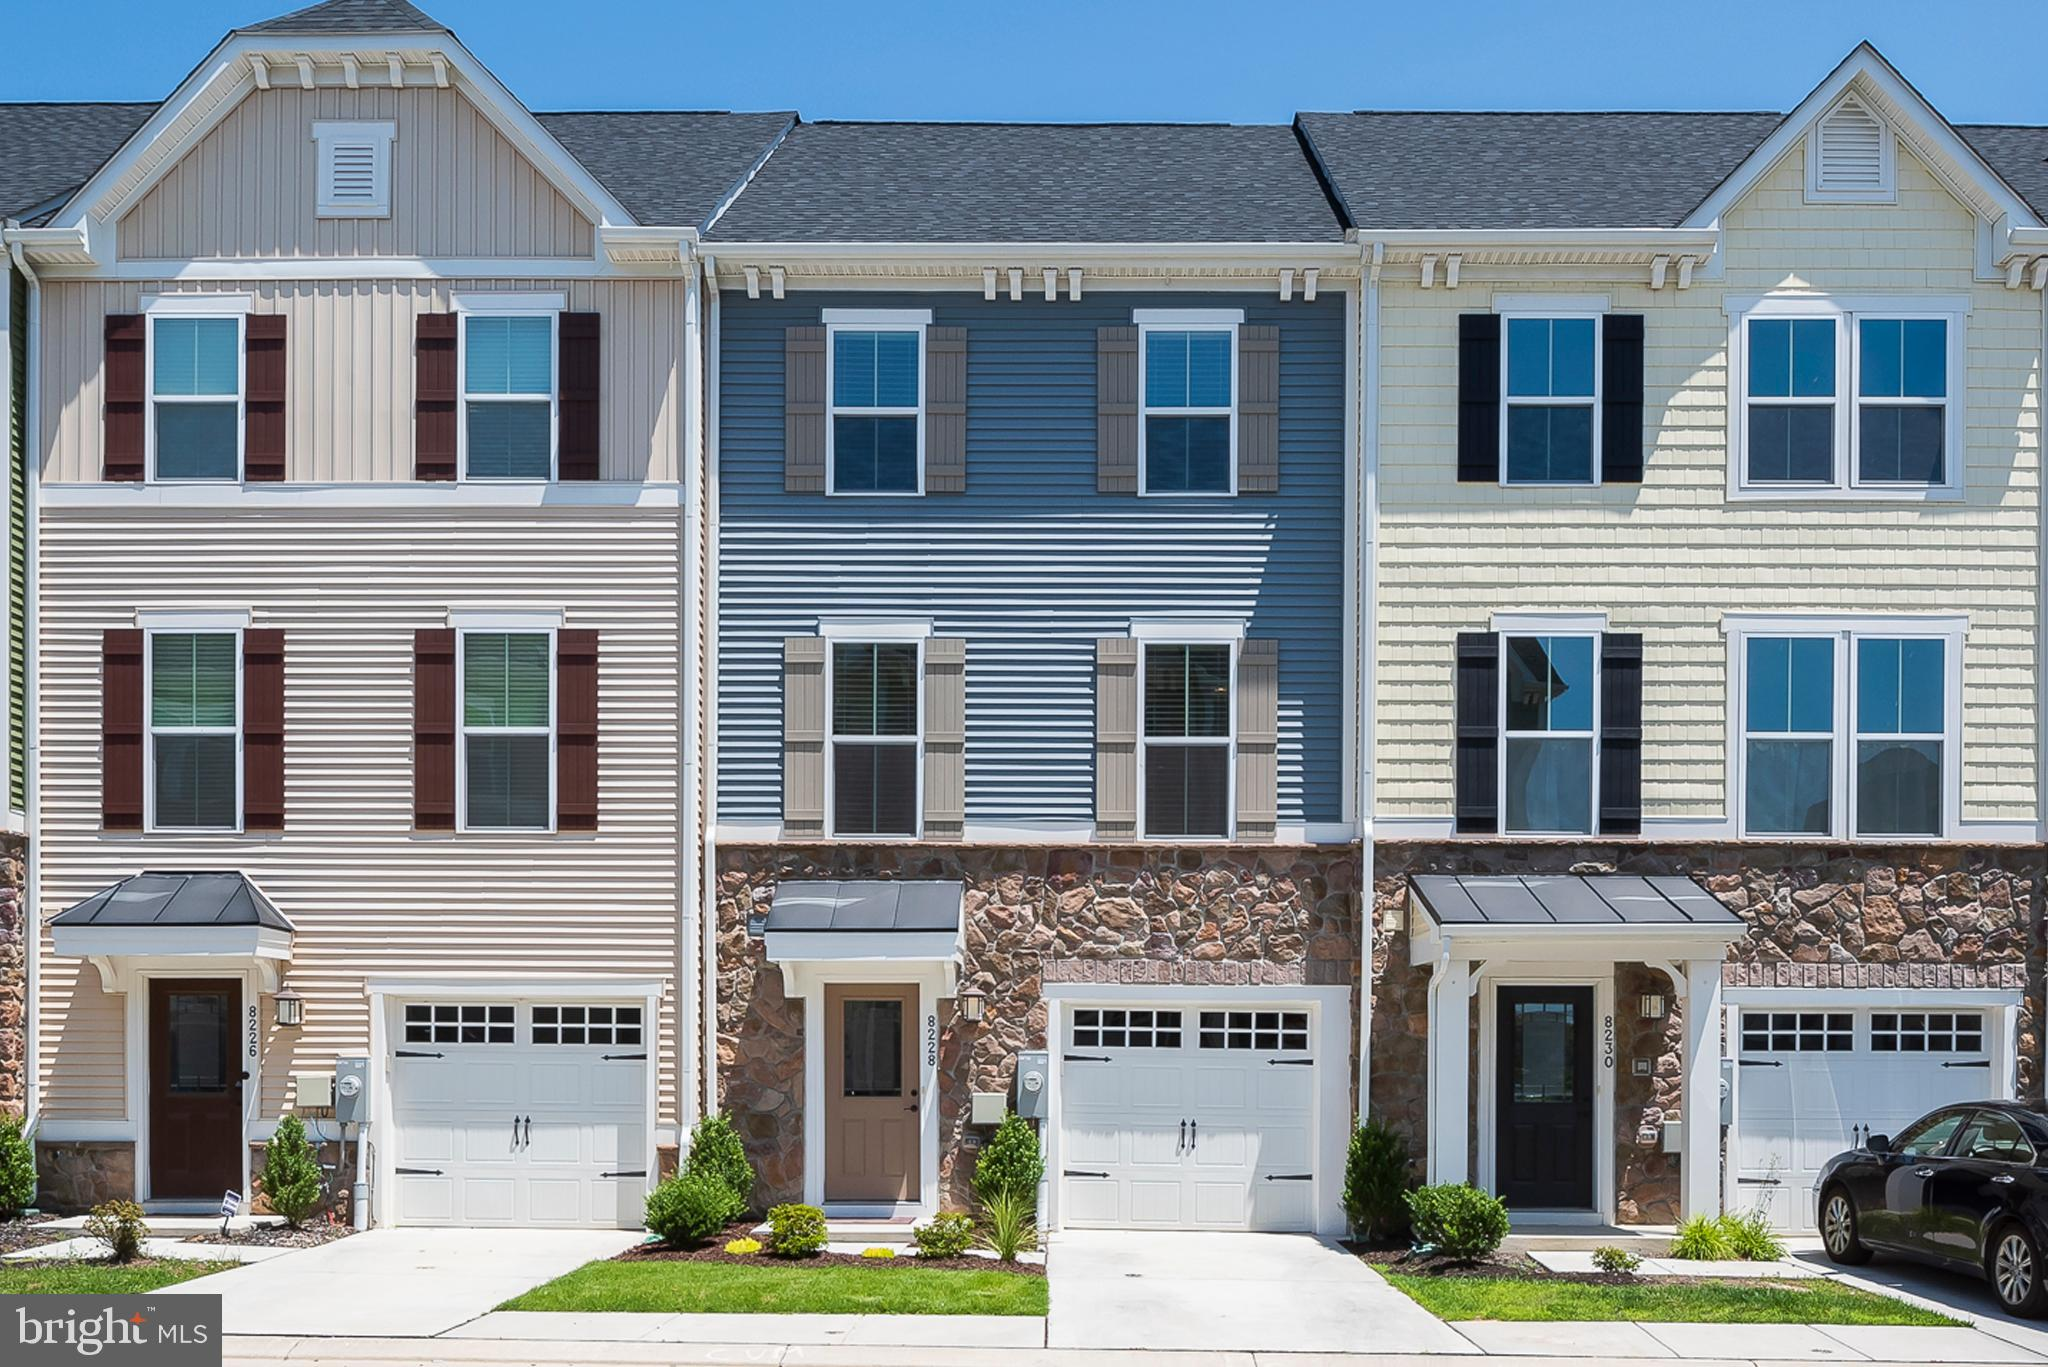 8228 SECLUDED COVE LANE, BALTIMORE, MD 21222